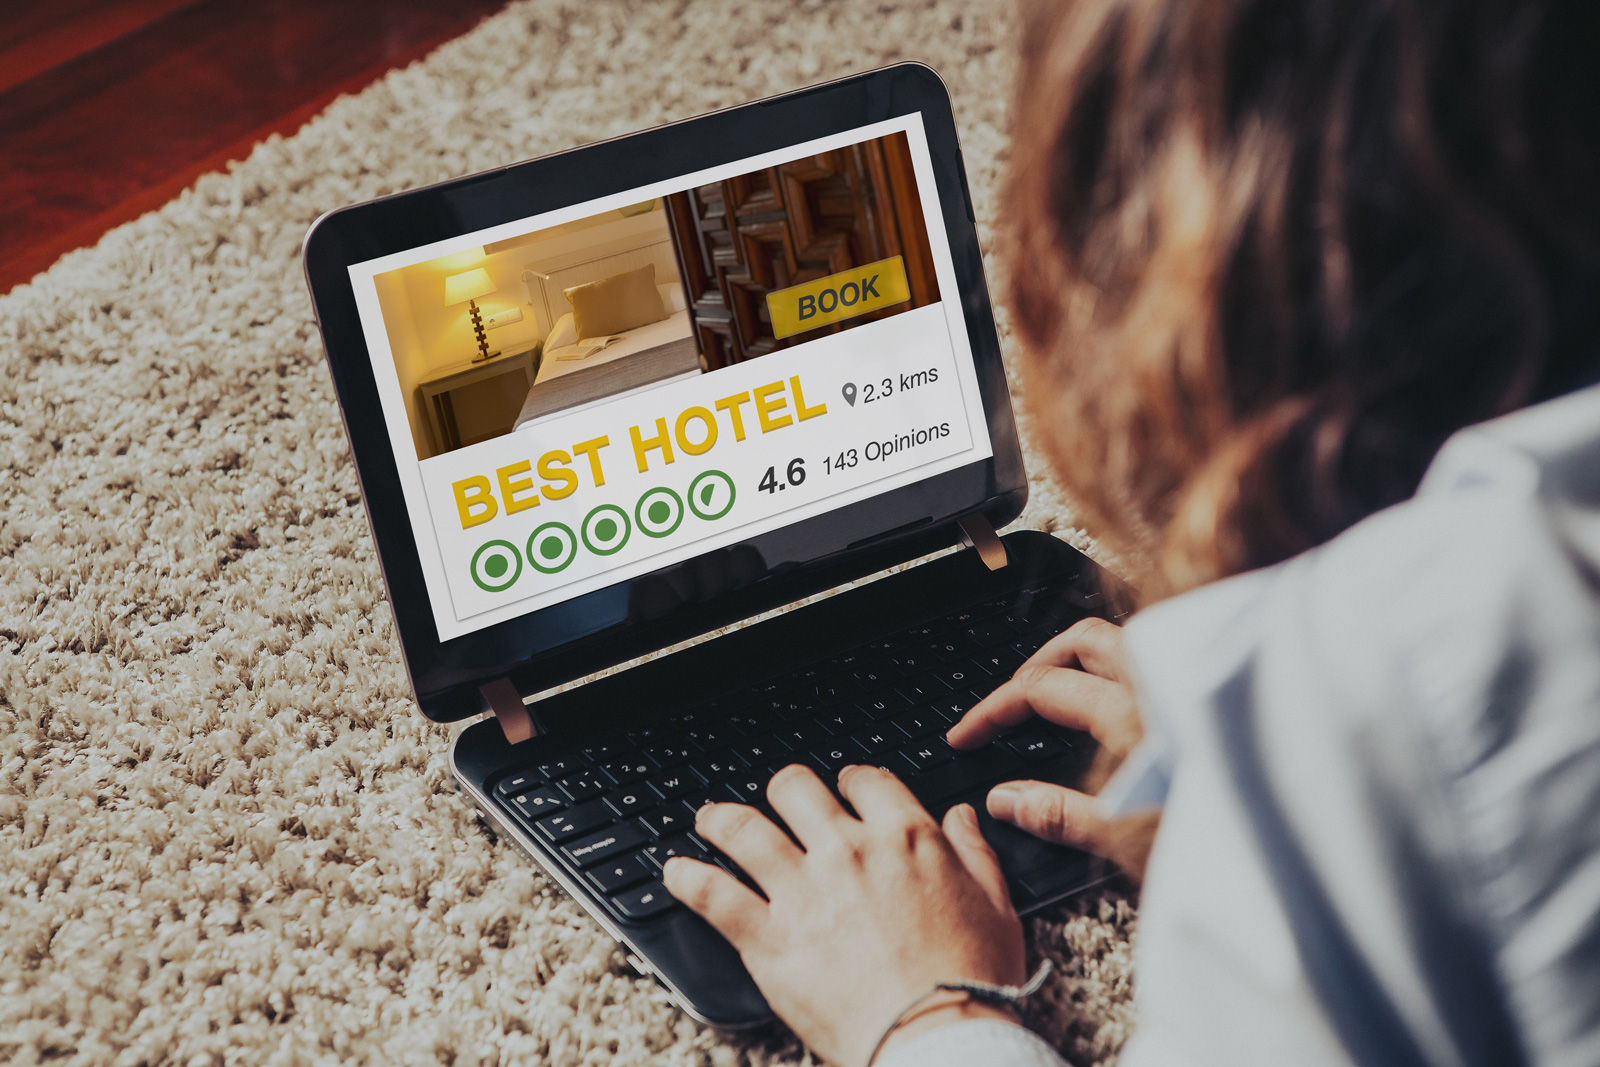 Learn to search Medicine Hat hotel reviews the right way.